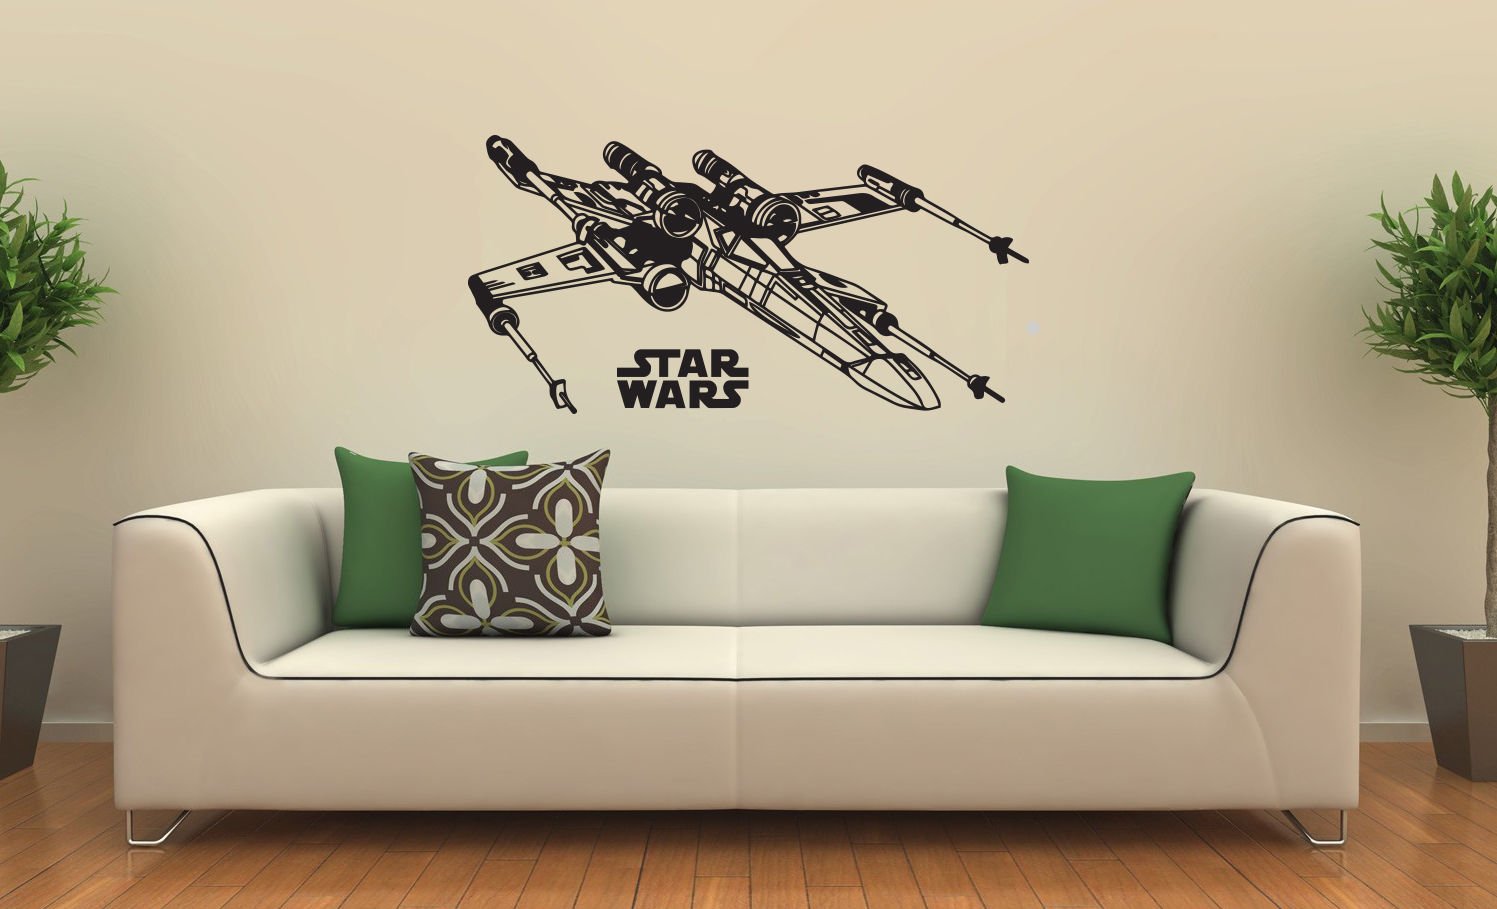 C013 new star wars x wing fighter wall decal black wall stickers c013 new star wars x wing fighter wall decal black wall stickers large 116cm x 58cm free shipping in wall stickers from home garden on aliexpress amipublicfo Choice Image